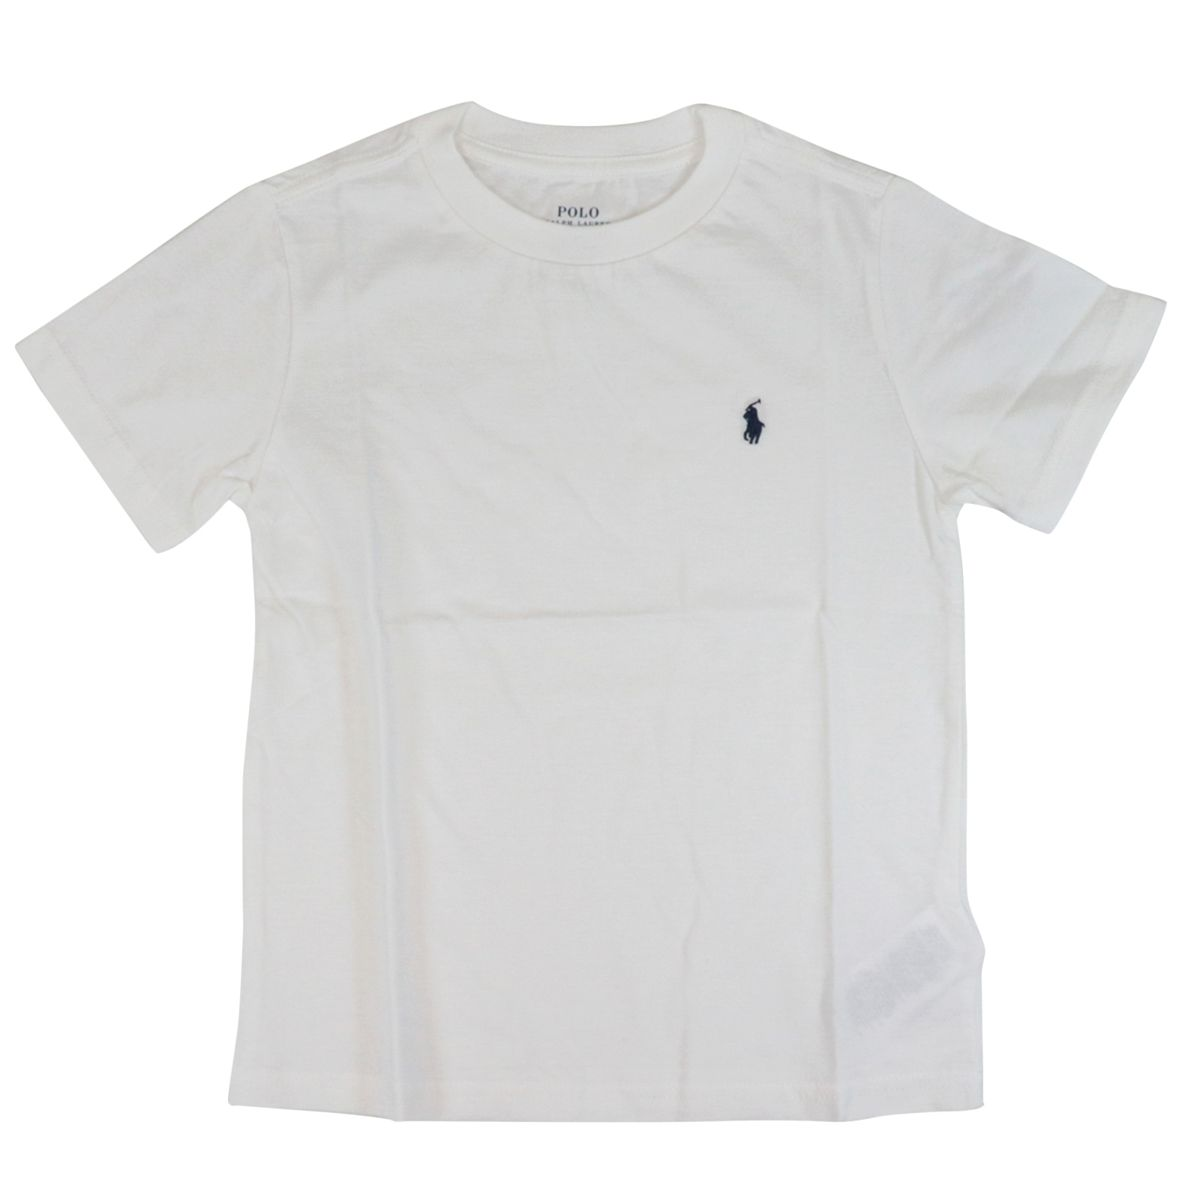 Cotton t-shirt with front logo embroidery White Polo Ralph Lauren